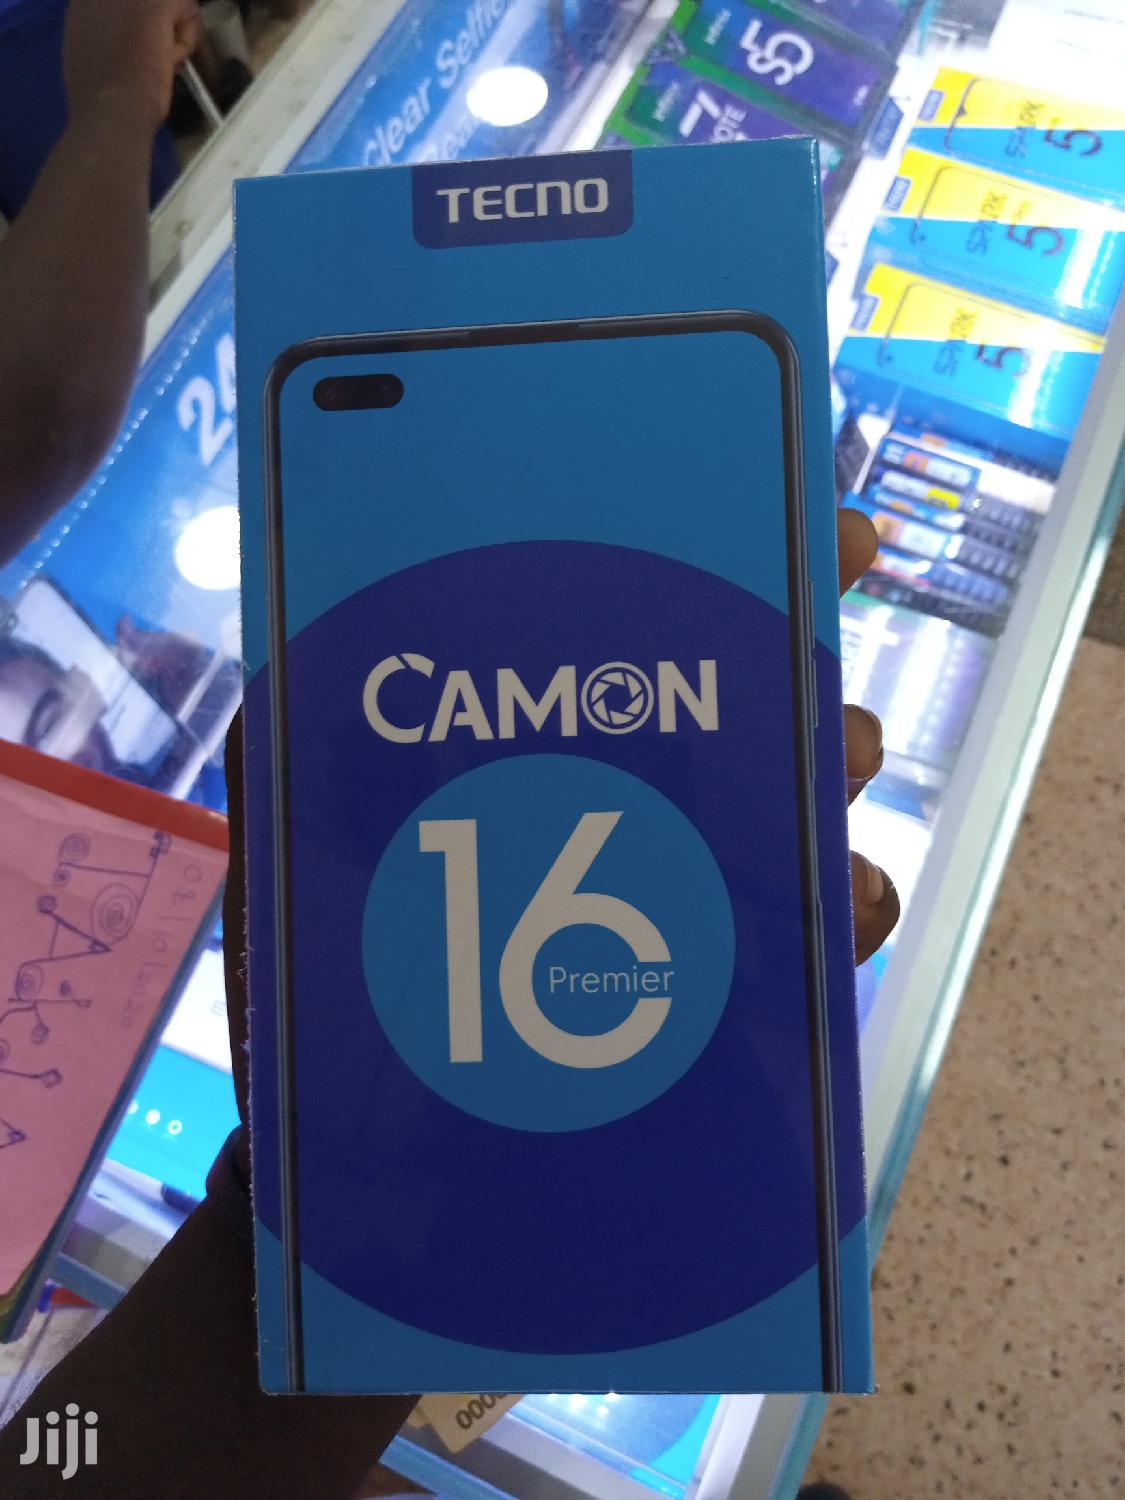 New Tecno Camon 16 Premier 128GB Black